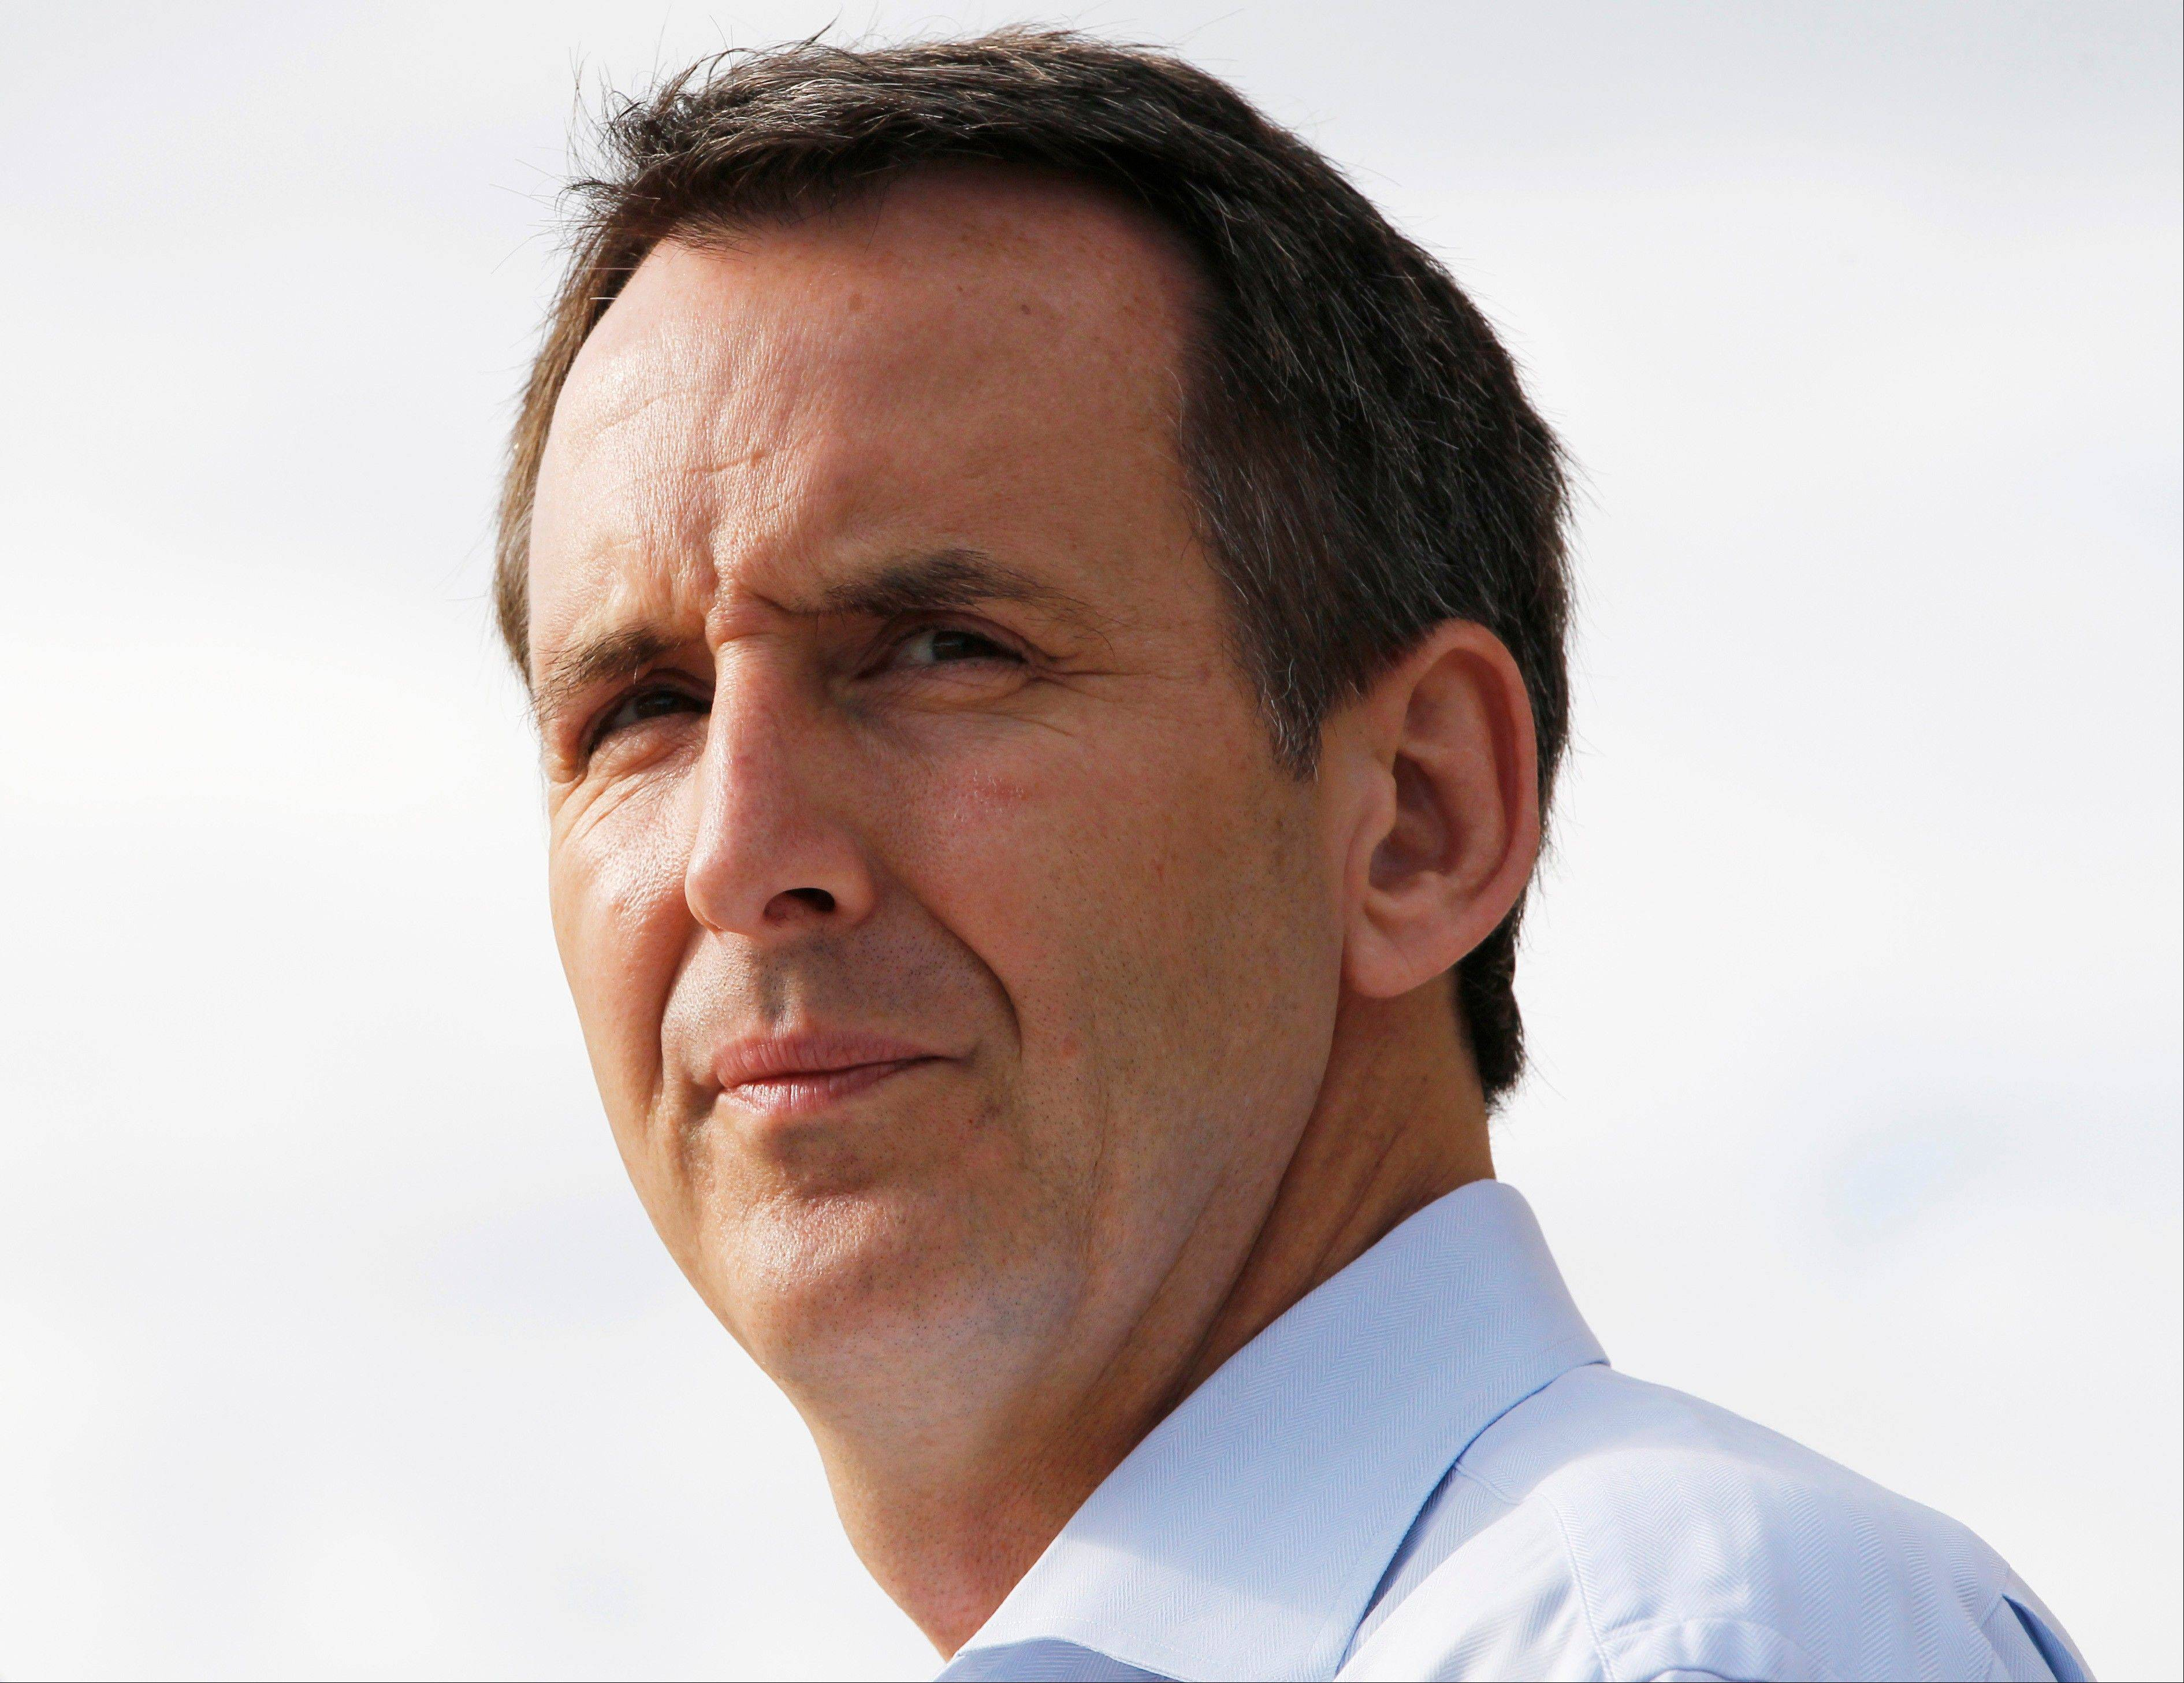 Pawlenty says his goal in Iowa is to 'do well'